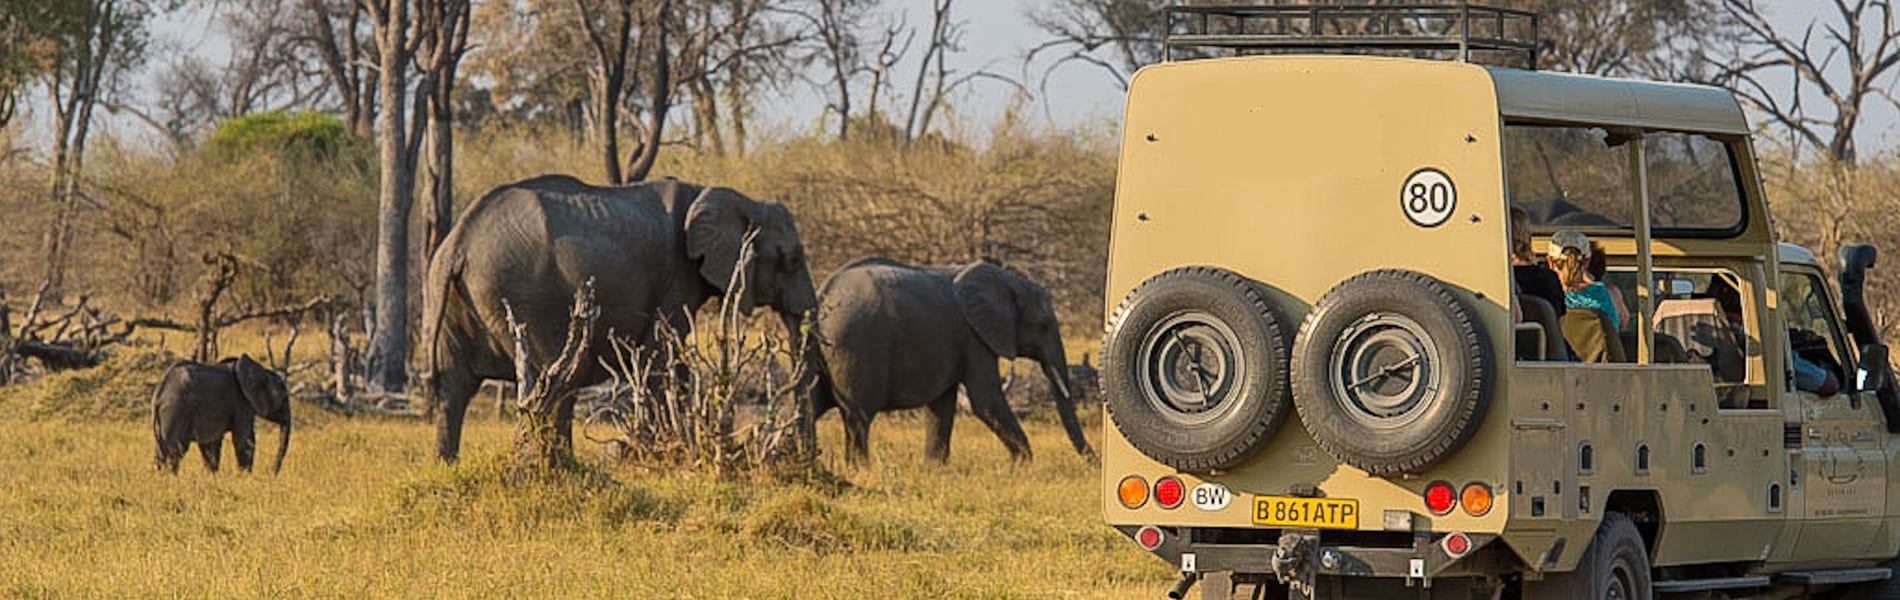 BT14 vehicle elephants